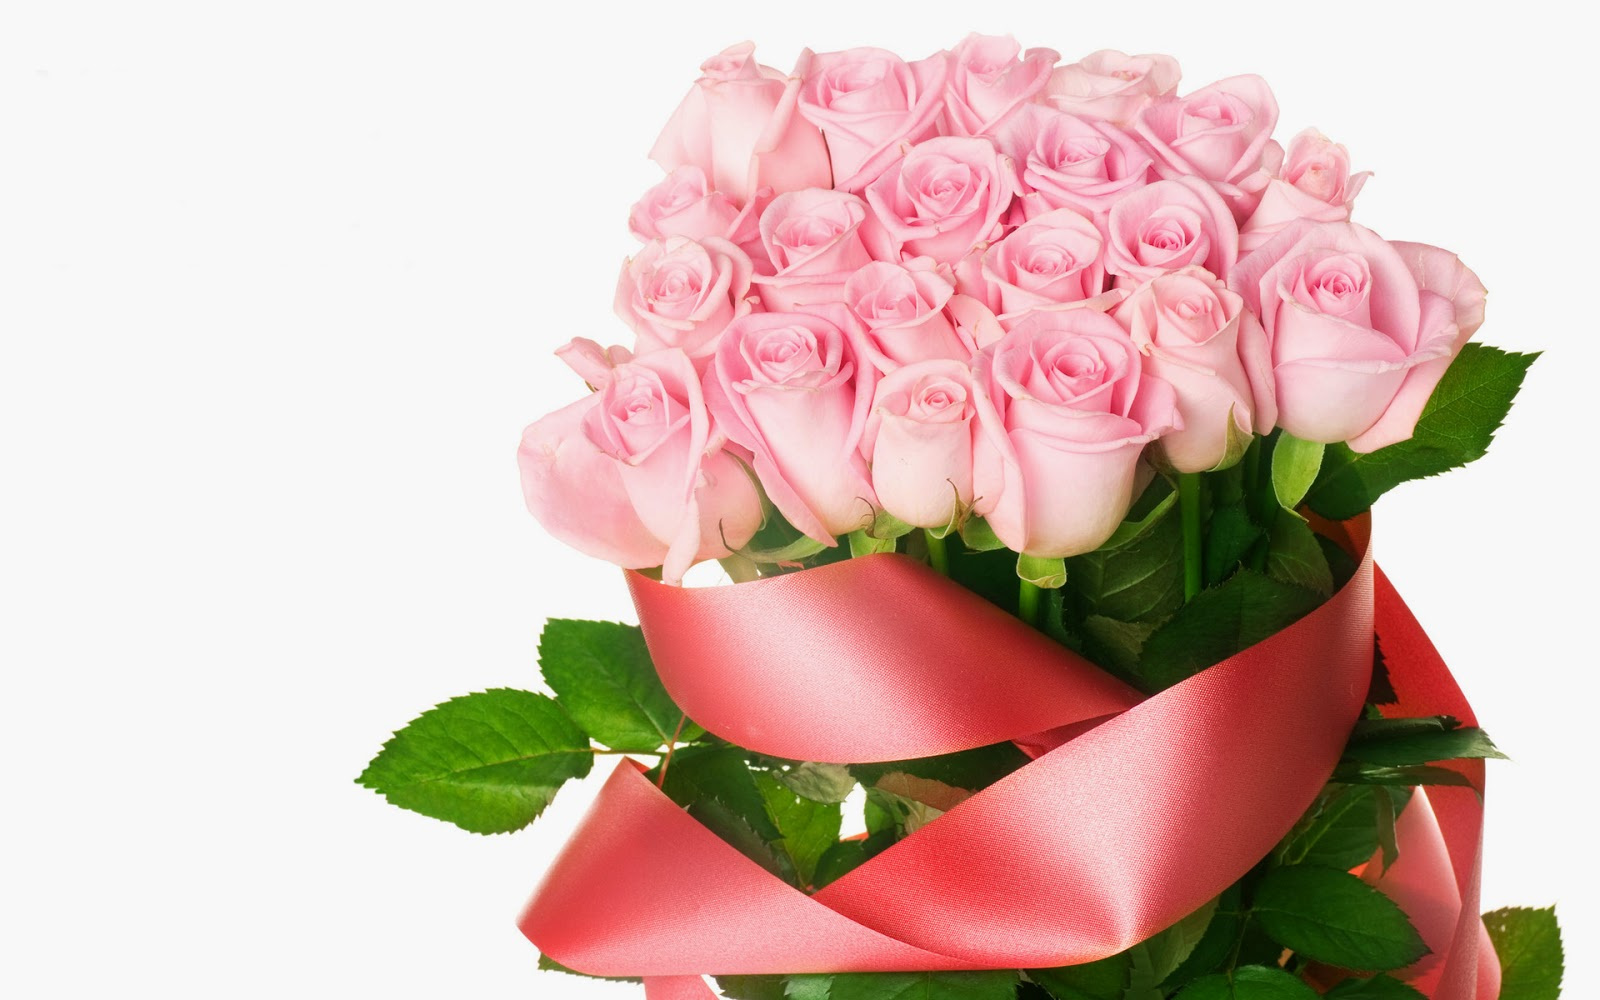 Animated beautiful flowers wallpapers for mobile hd labzada wallpaper animated beautiful flowers wallpapers for mobile anime wp source pink rose hd wallpapers flowershdwallpapers izmirmasajfo